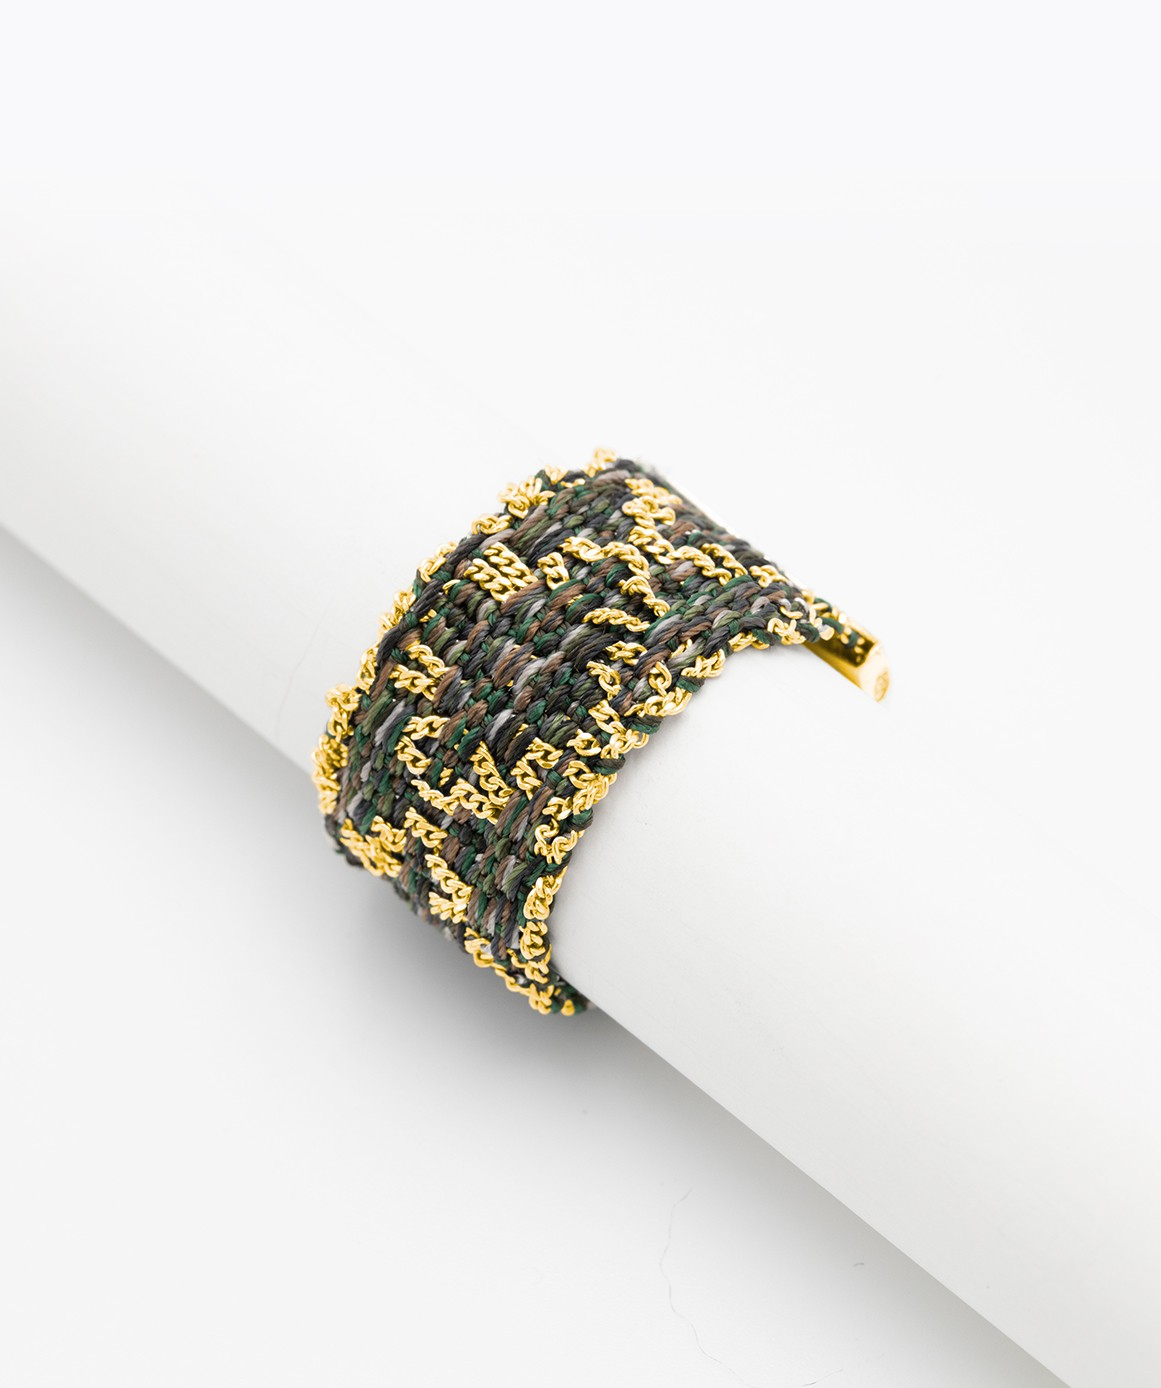 RHOMBUS Ring in Sterling Silver 18Kt. Yellow gold plated. Fabric: Military